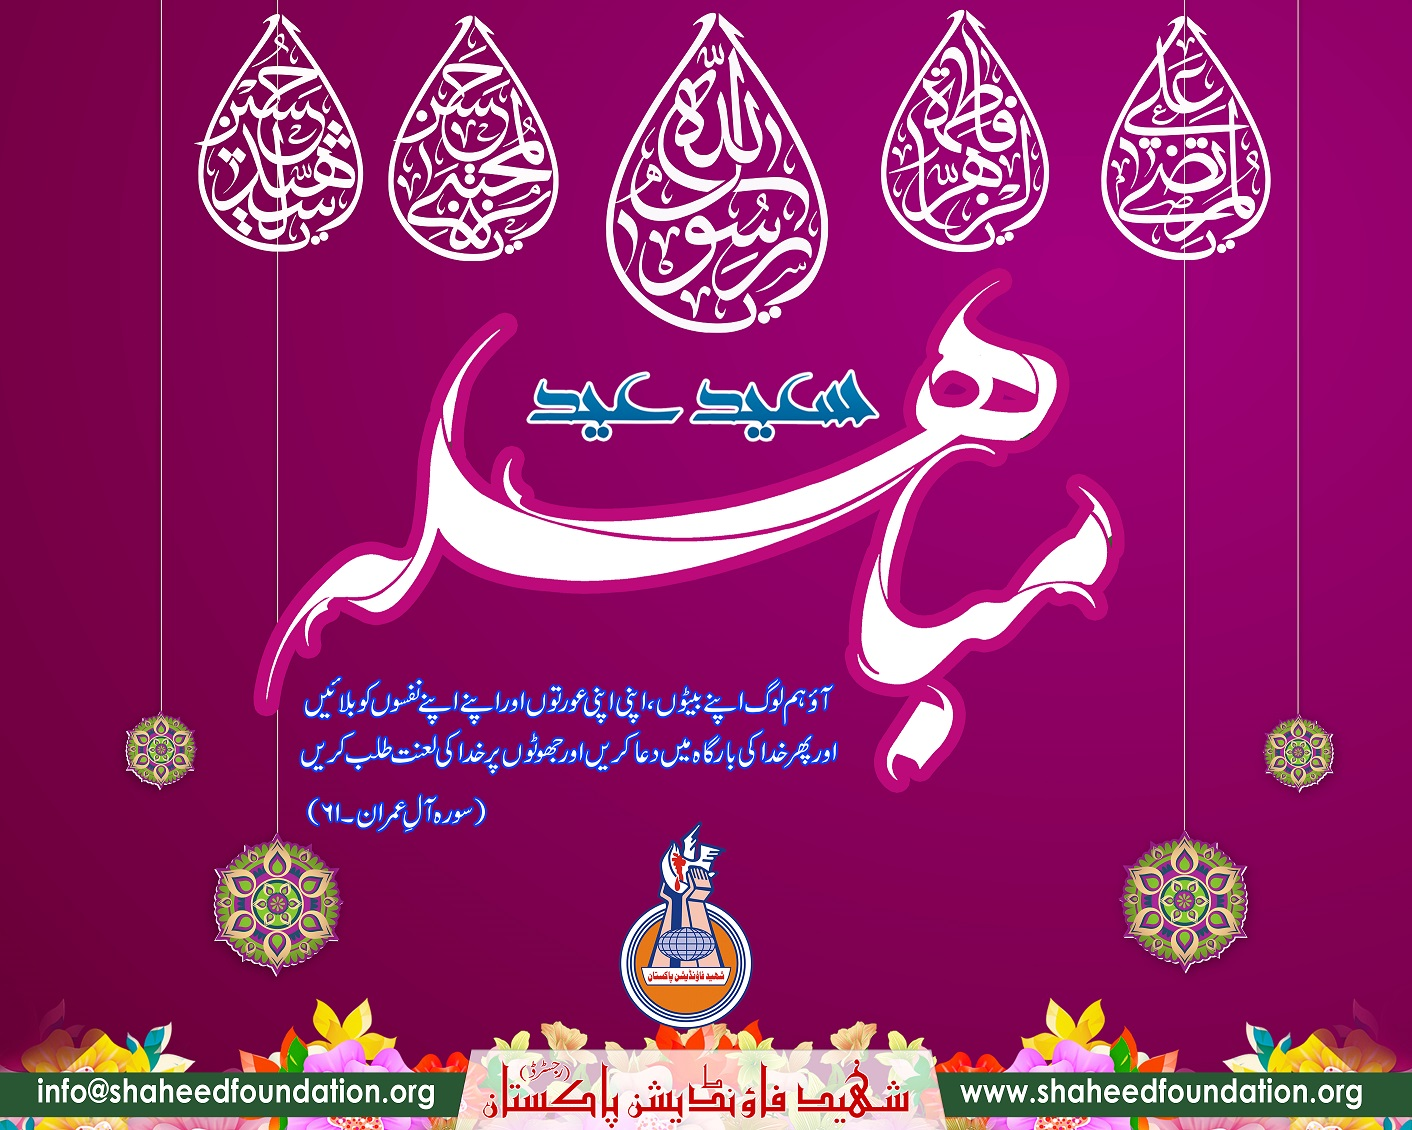 24th Zilhajj: Heartiest Greetings & Felicitations on the Blessed Occassion of Eid-e-Mubahila.